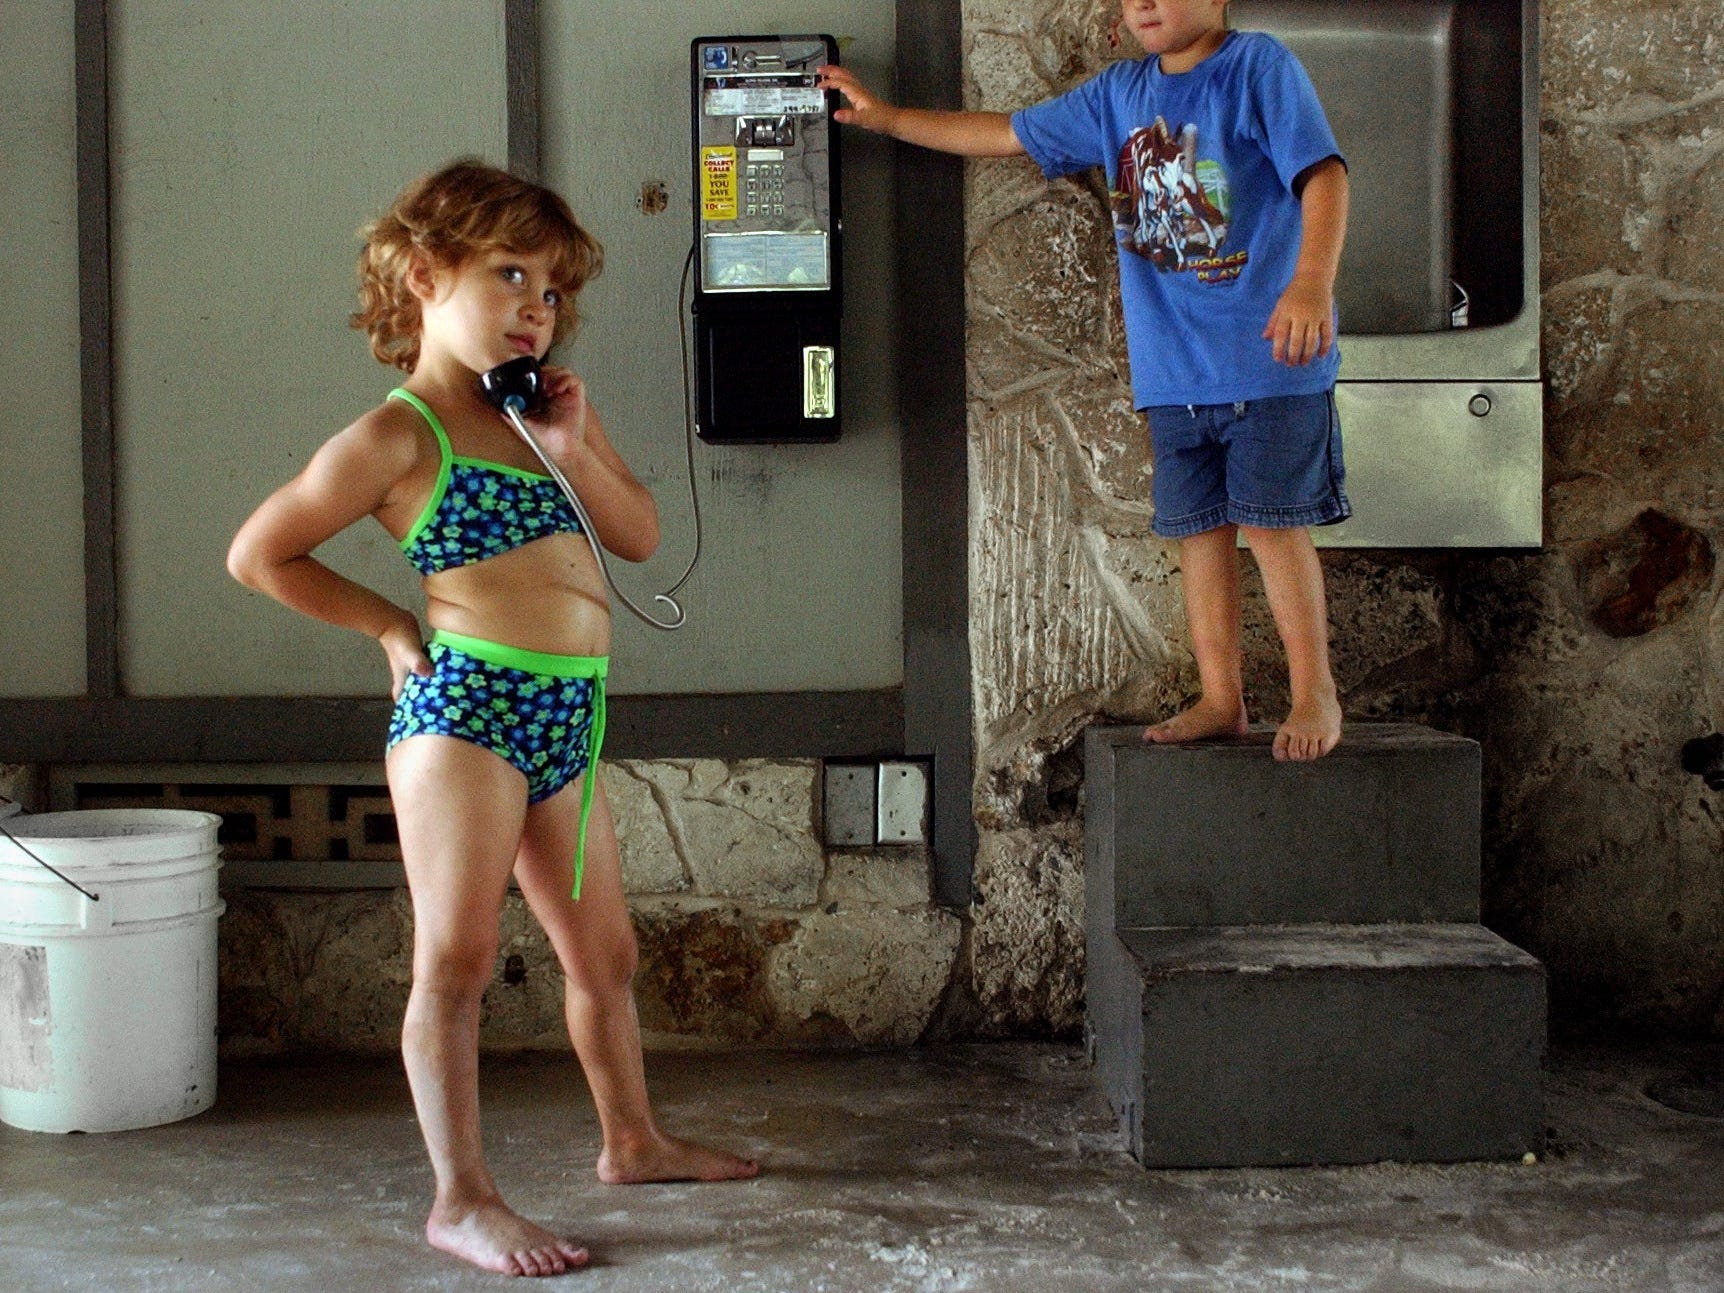 December, 2002 - Kylie Scent, 5, has an imaginary conversation on a broken pay phone while her cousin, Tyler Bales, 4, prepares to sabotage her call. The pair spent the afternoon with family at Charles Park in Vero Beach.